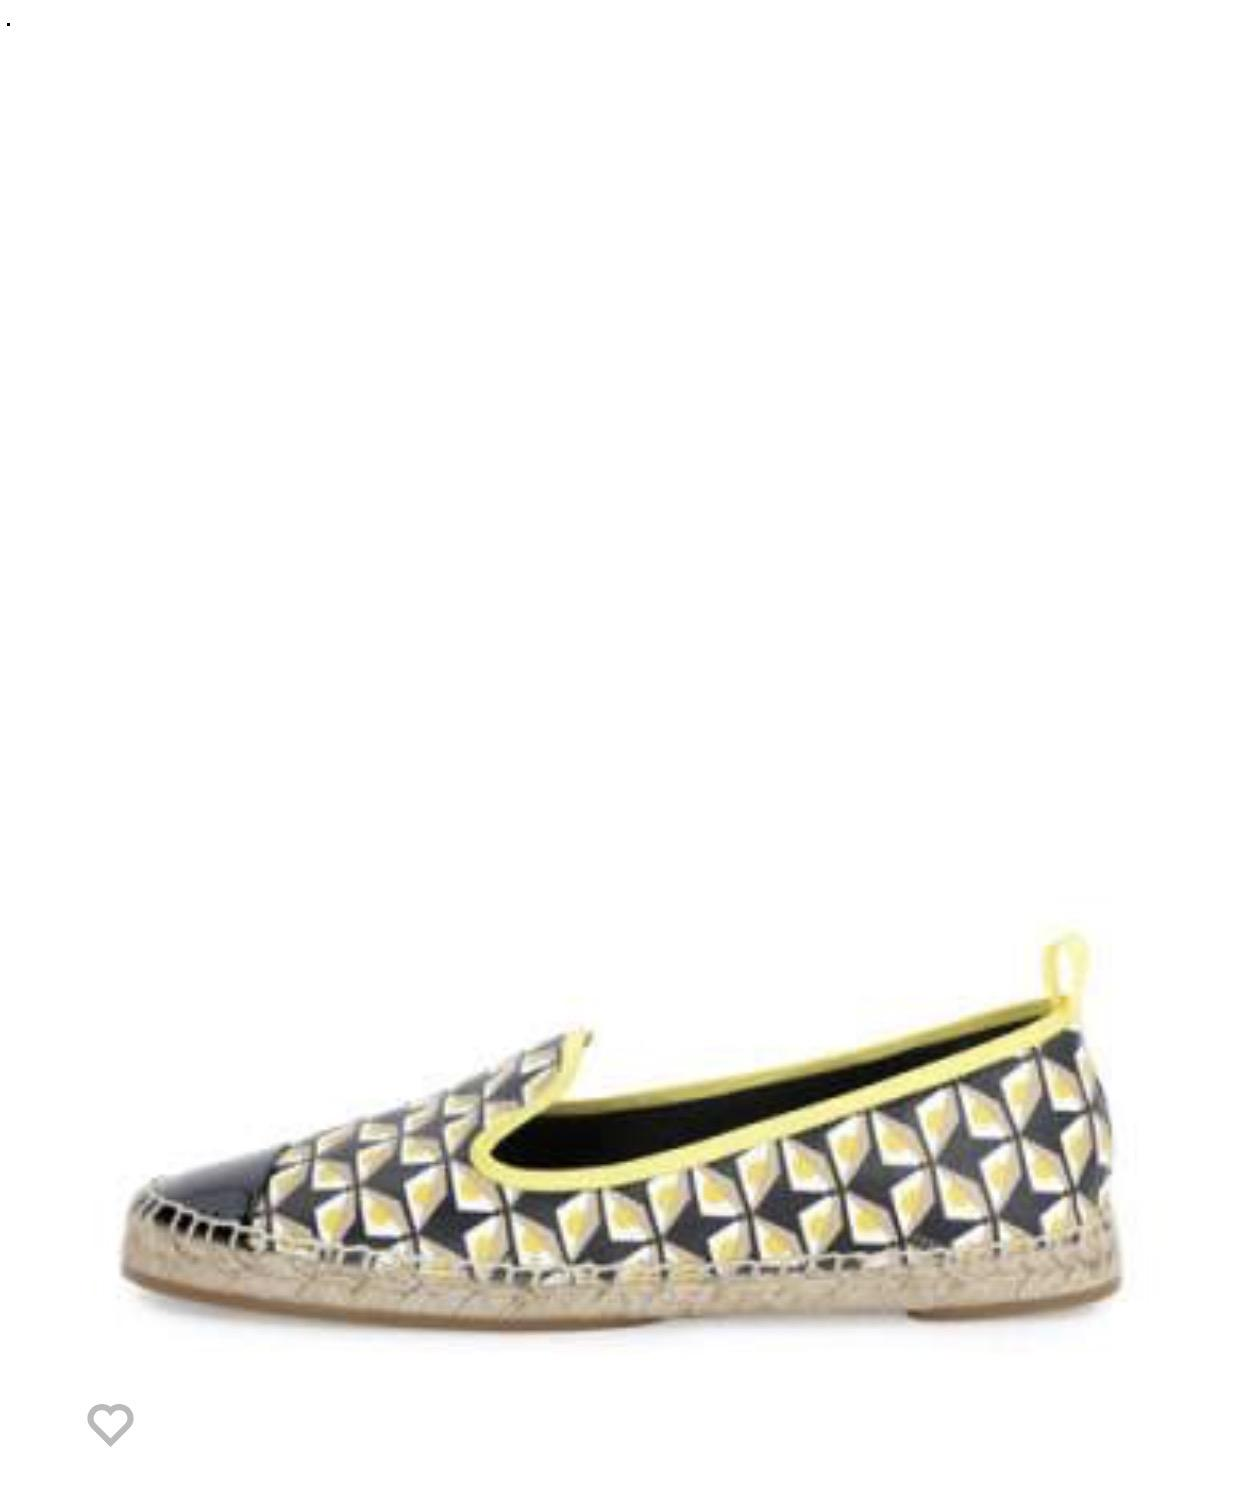 Fendi Junia Printed Cap-Toe Espadrille, Black/Straw